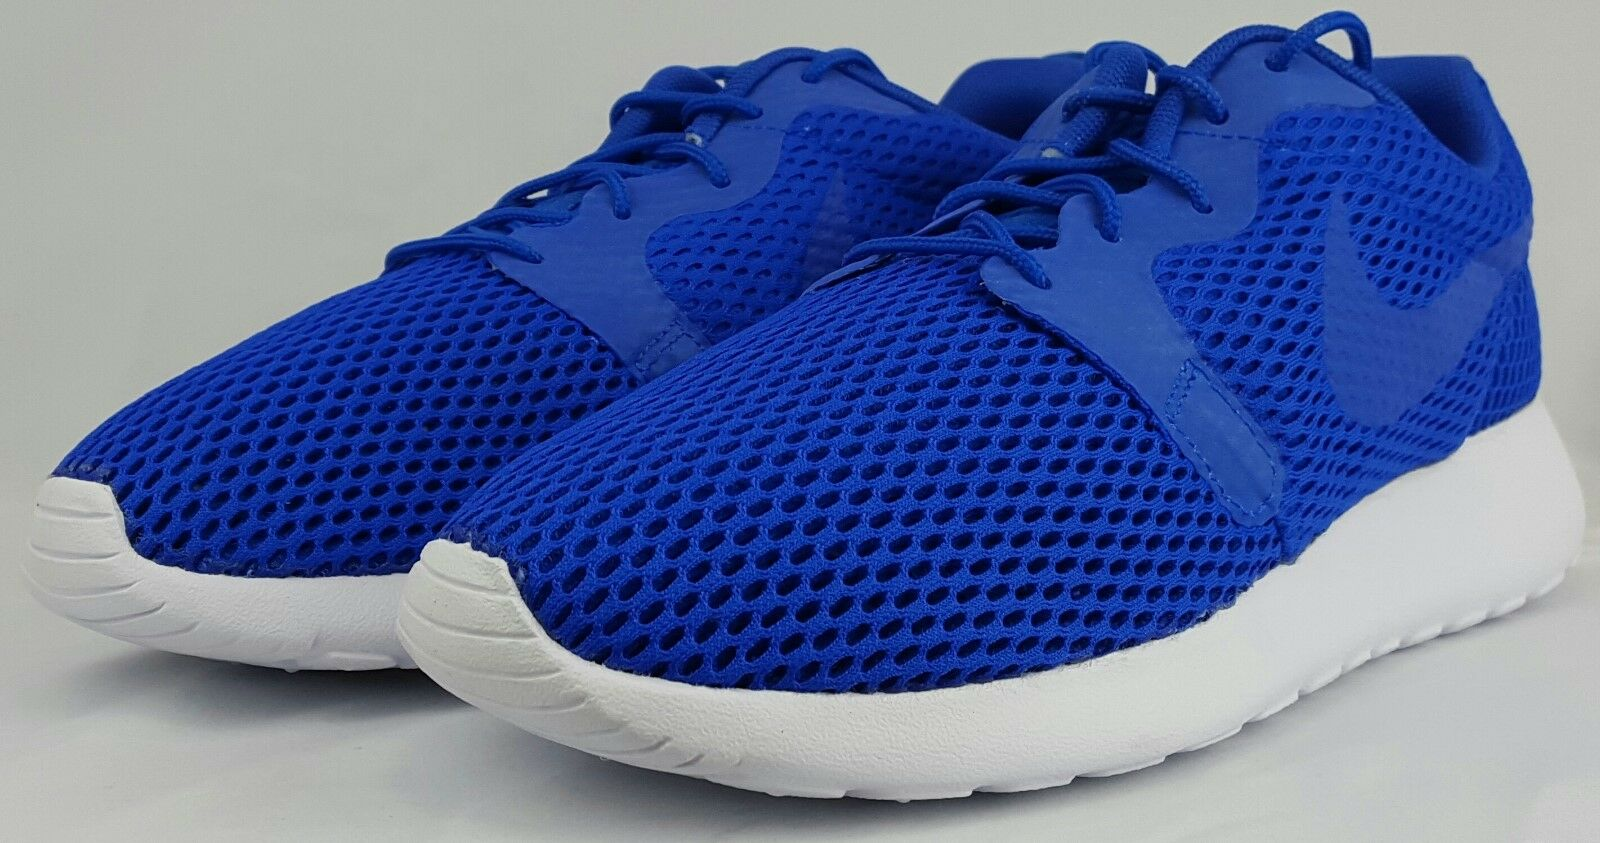 BRAND NEW NIKE ROSHE ONE HYP BR SIZES 8.5-13 70.00 833125 401 FREE SHIPPING